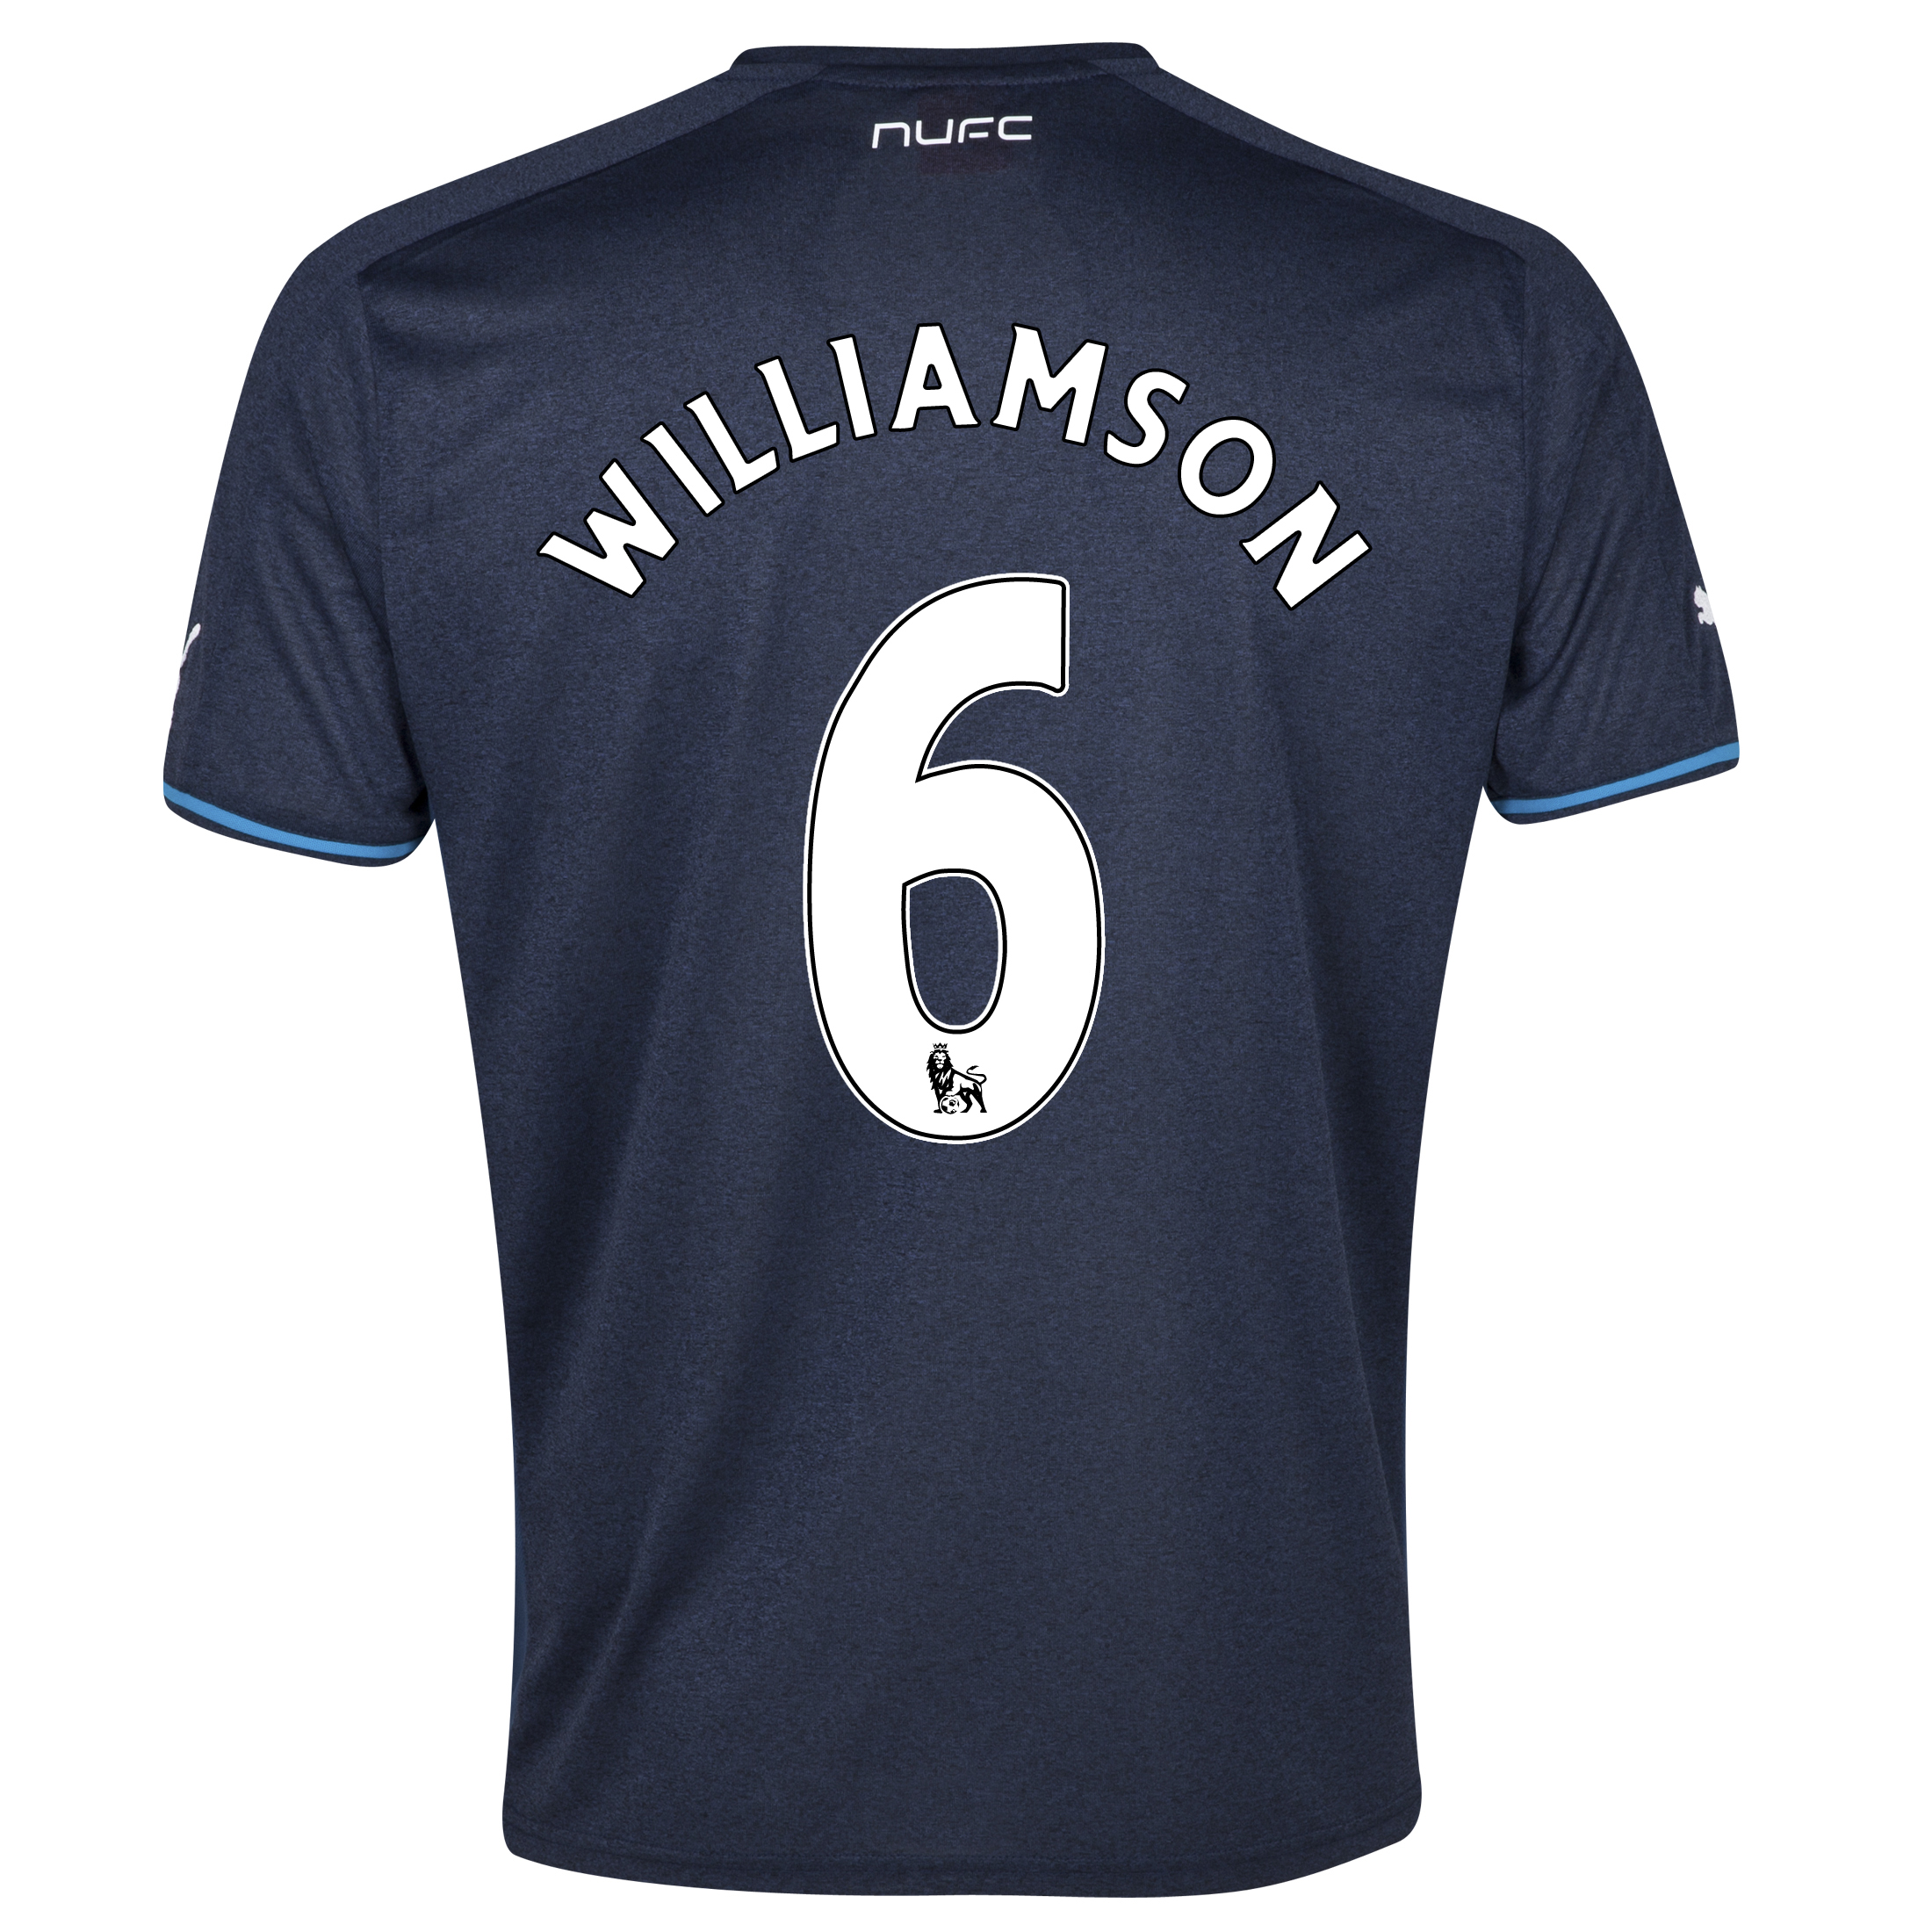 Newcastle United Away Shirt 2013/14 - kids with Williamson 6 printing